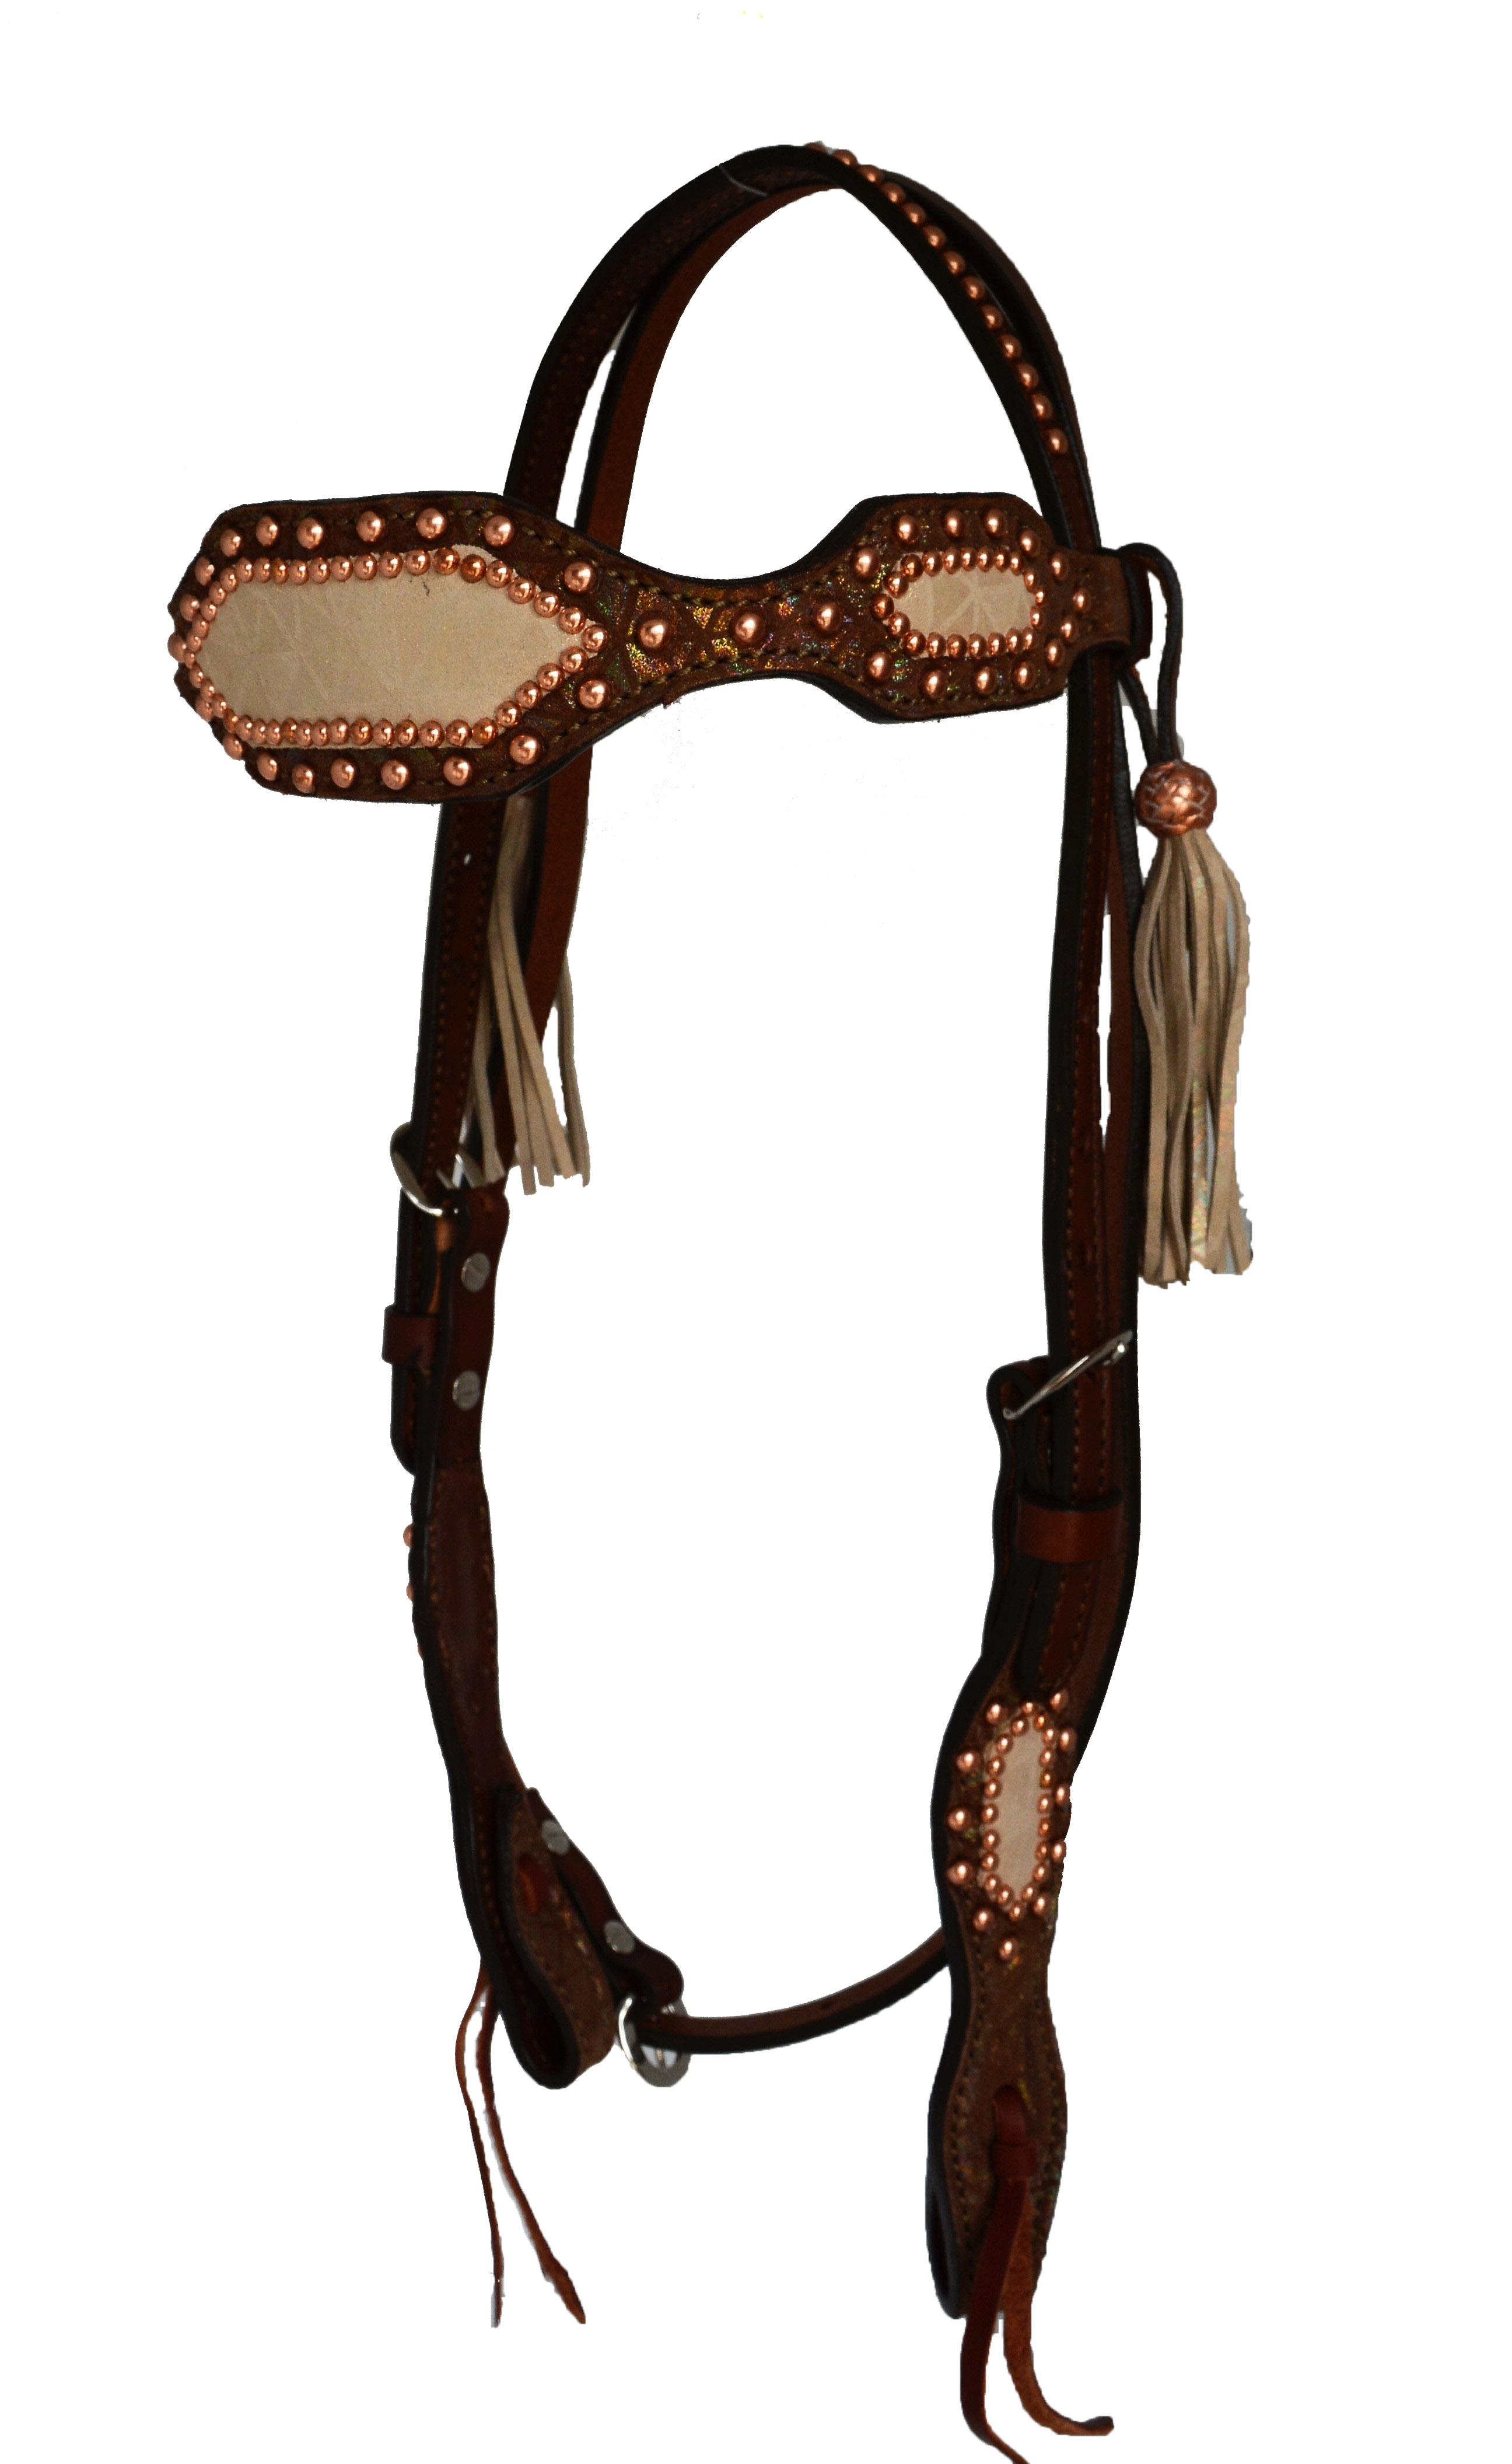 HEADSTALL WITH TOAST IRIDESCENT BACKGROUND AND IVORY IRIDESCENT OVERLAY